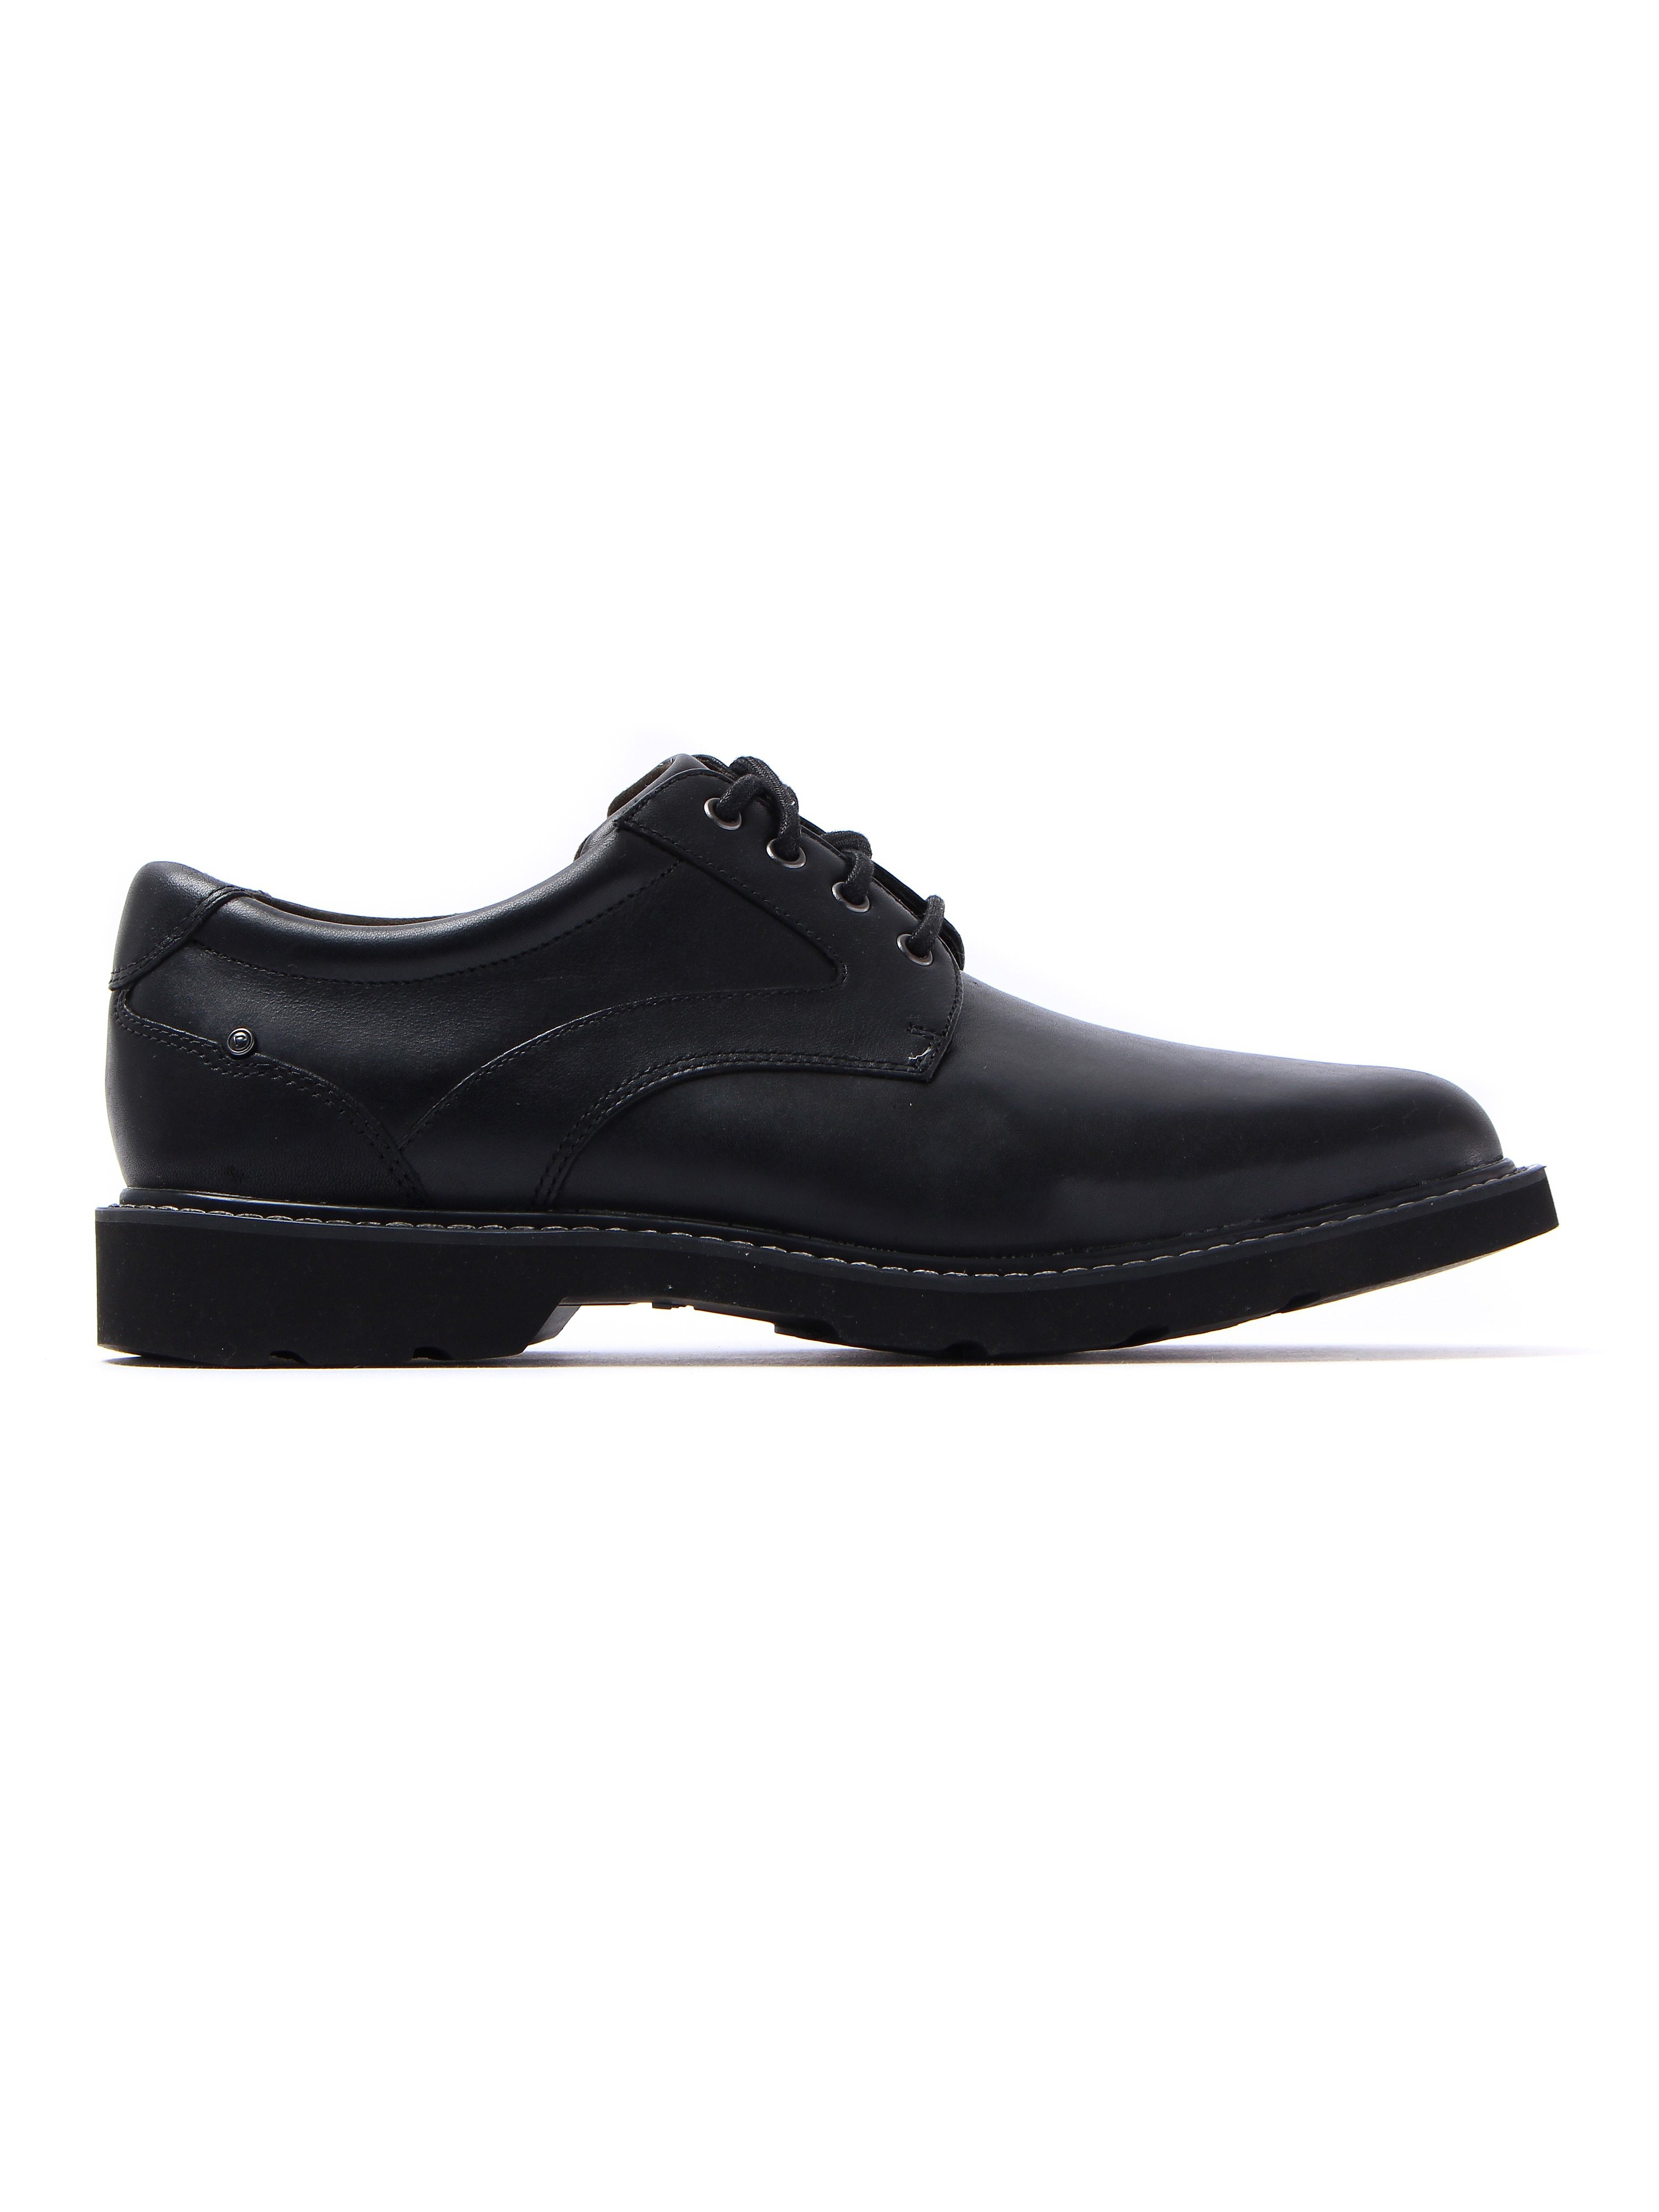 Rockport Men's Charles View Leather Derby Shoes - Black